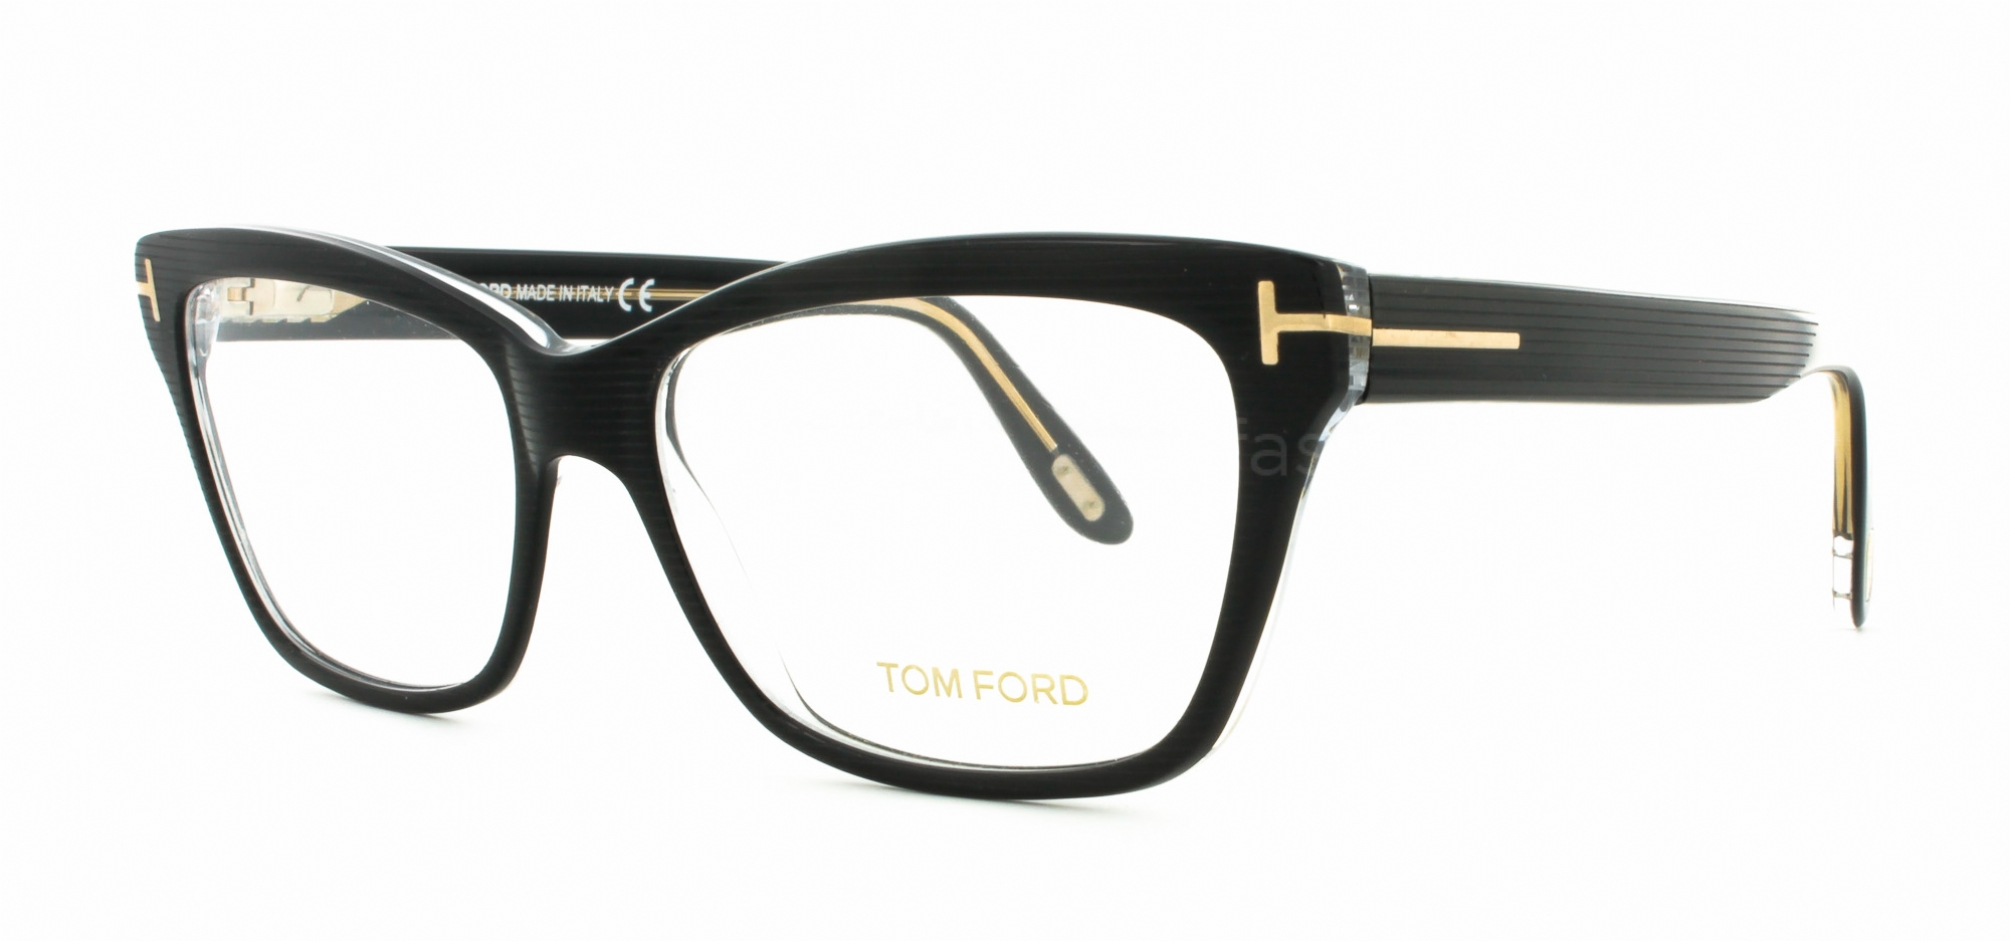 c7ac23b721 Buy Tom Ford Eyeglasses directly from OpticsFast.com